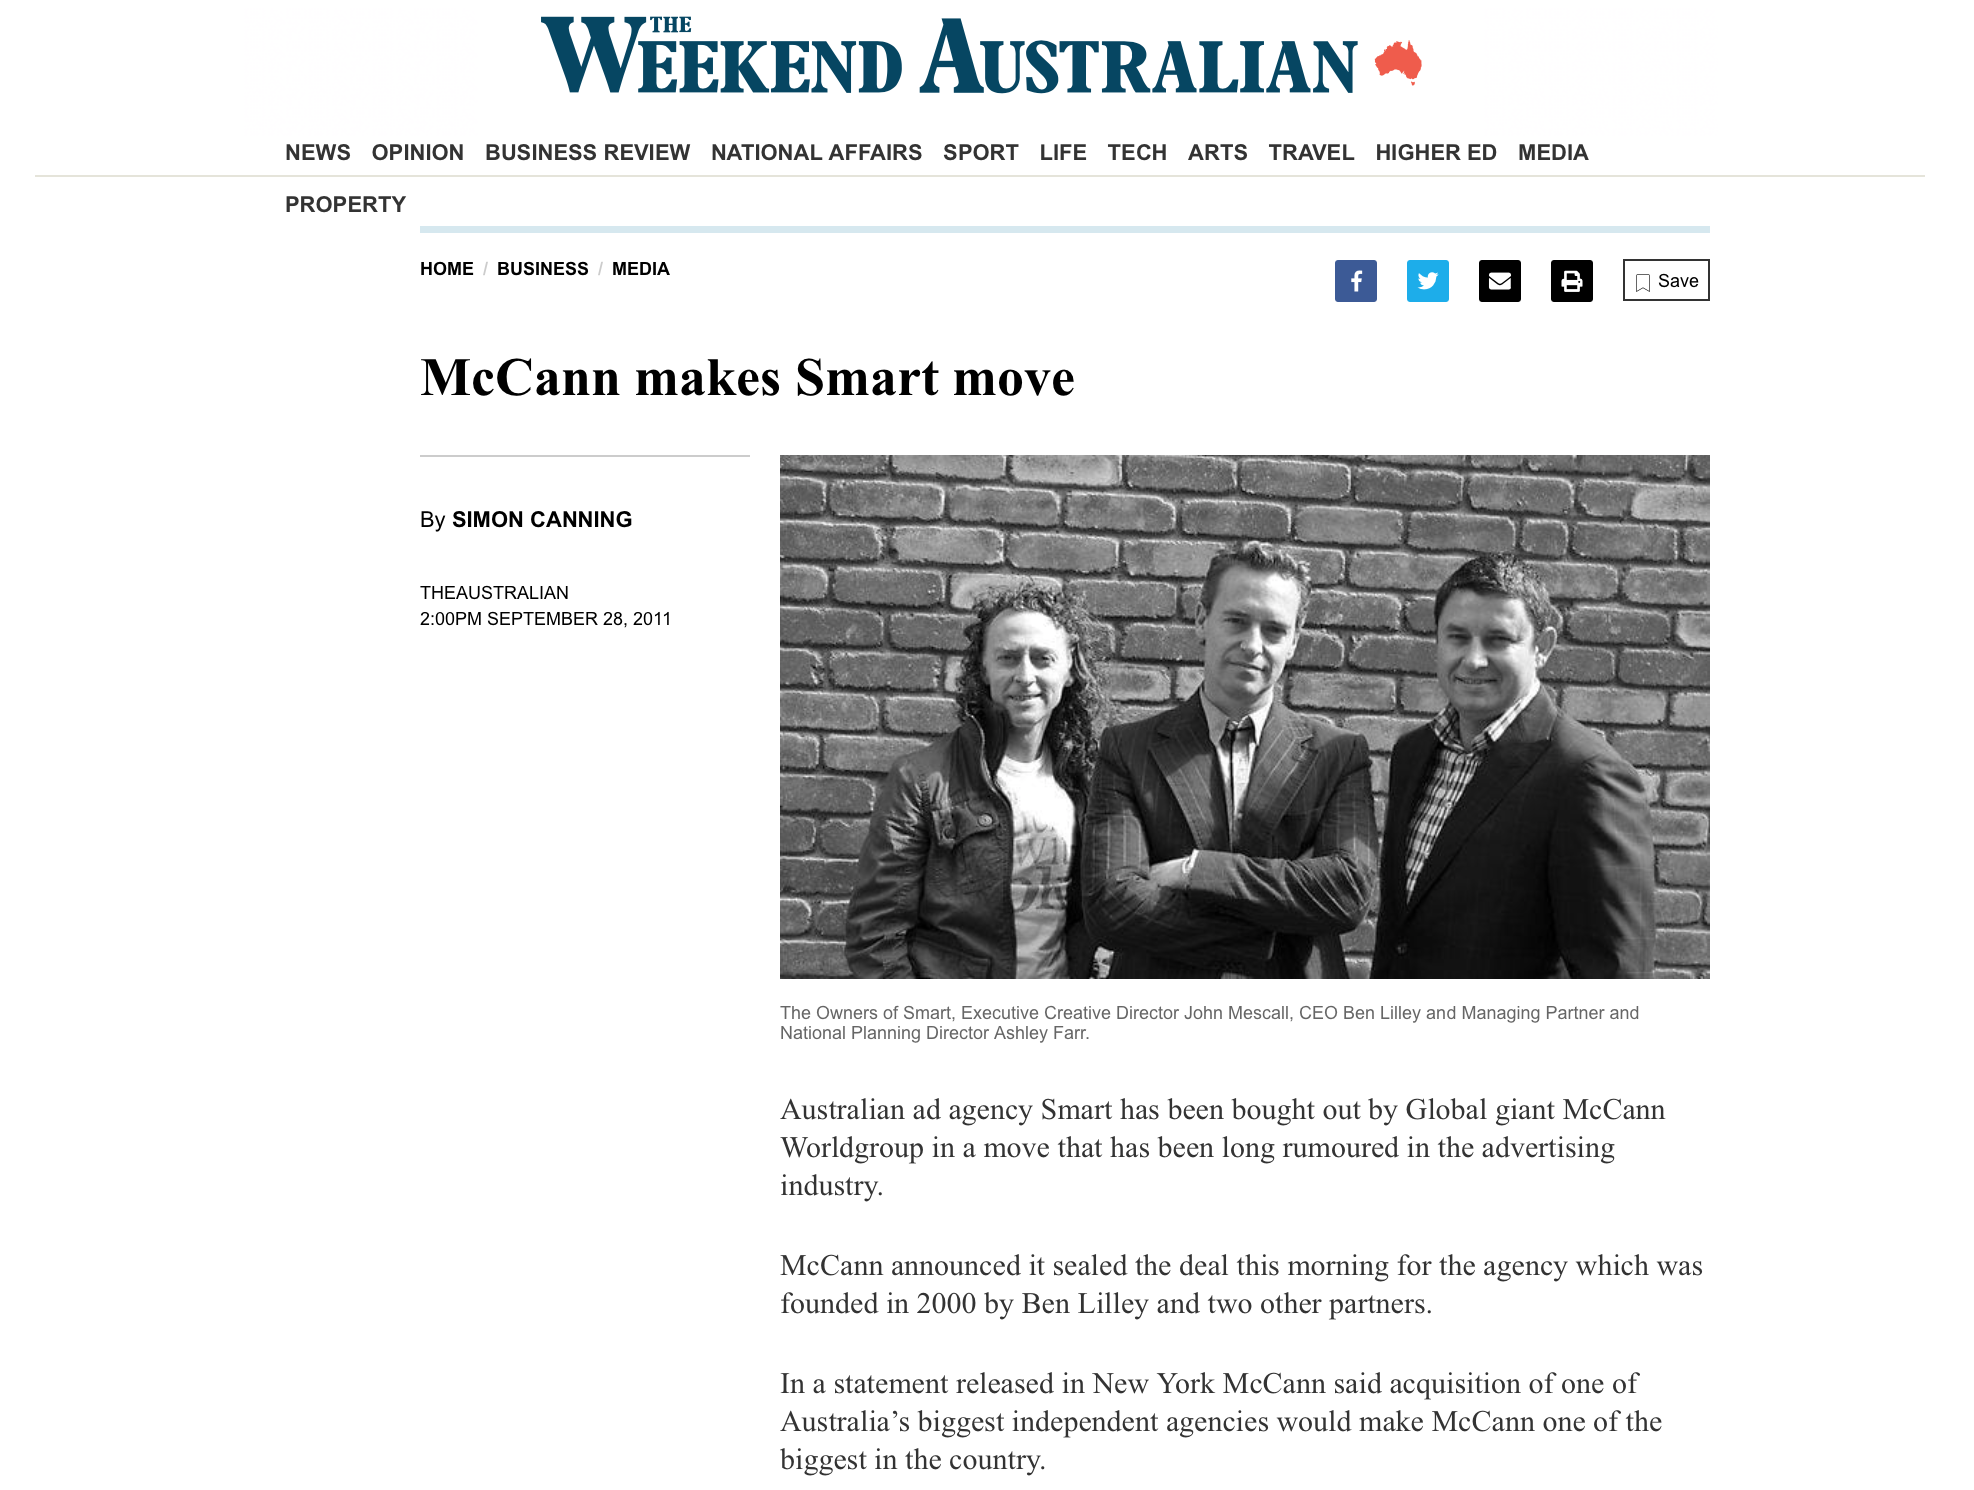 The Australian's report on SMART's acquisition by McCann.